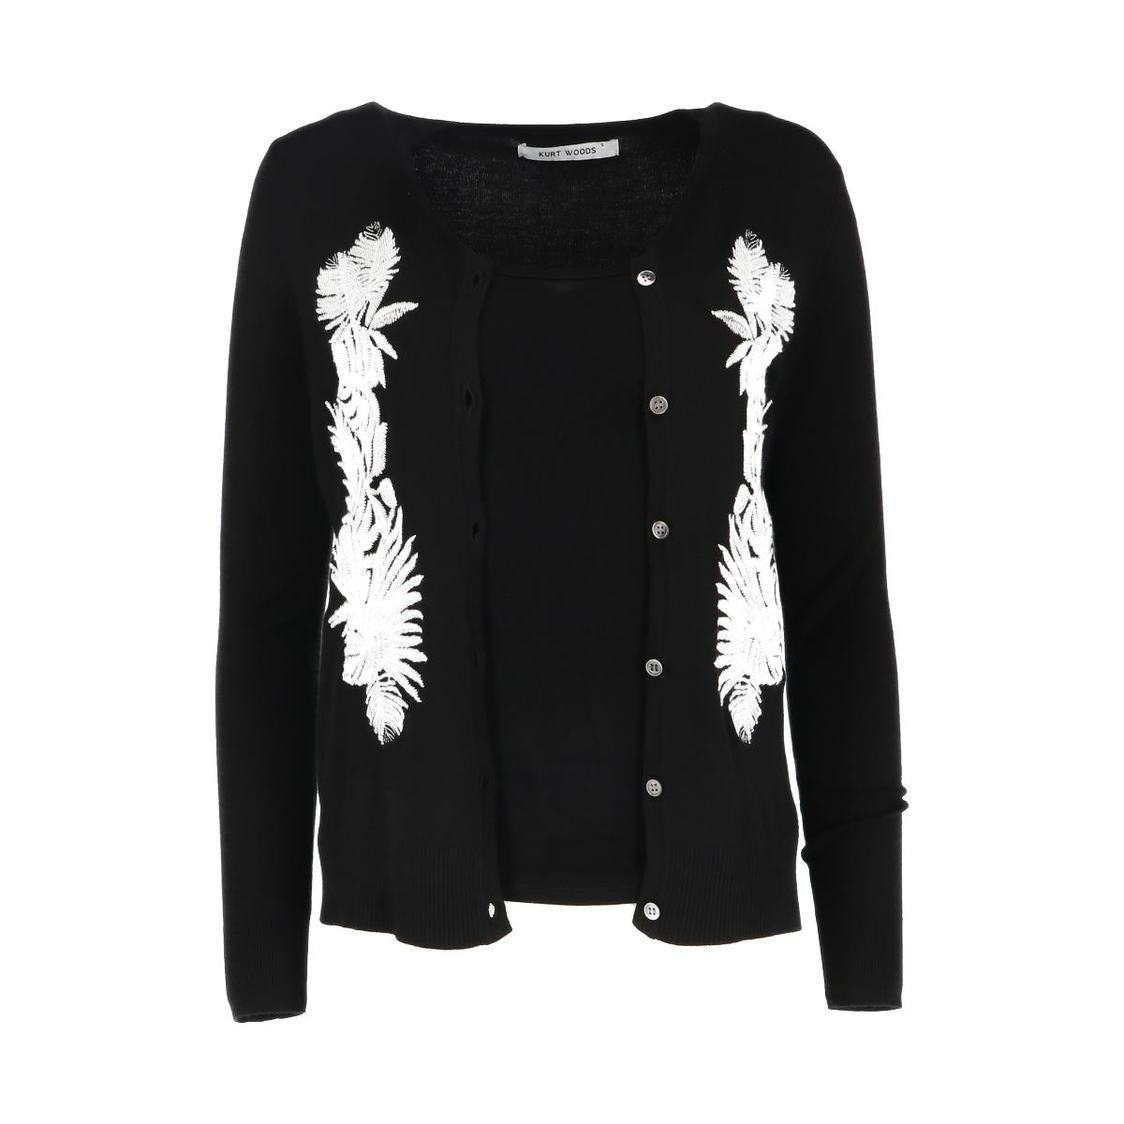 Floral Embroidered Black Cardigan